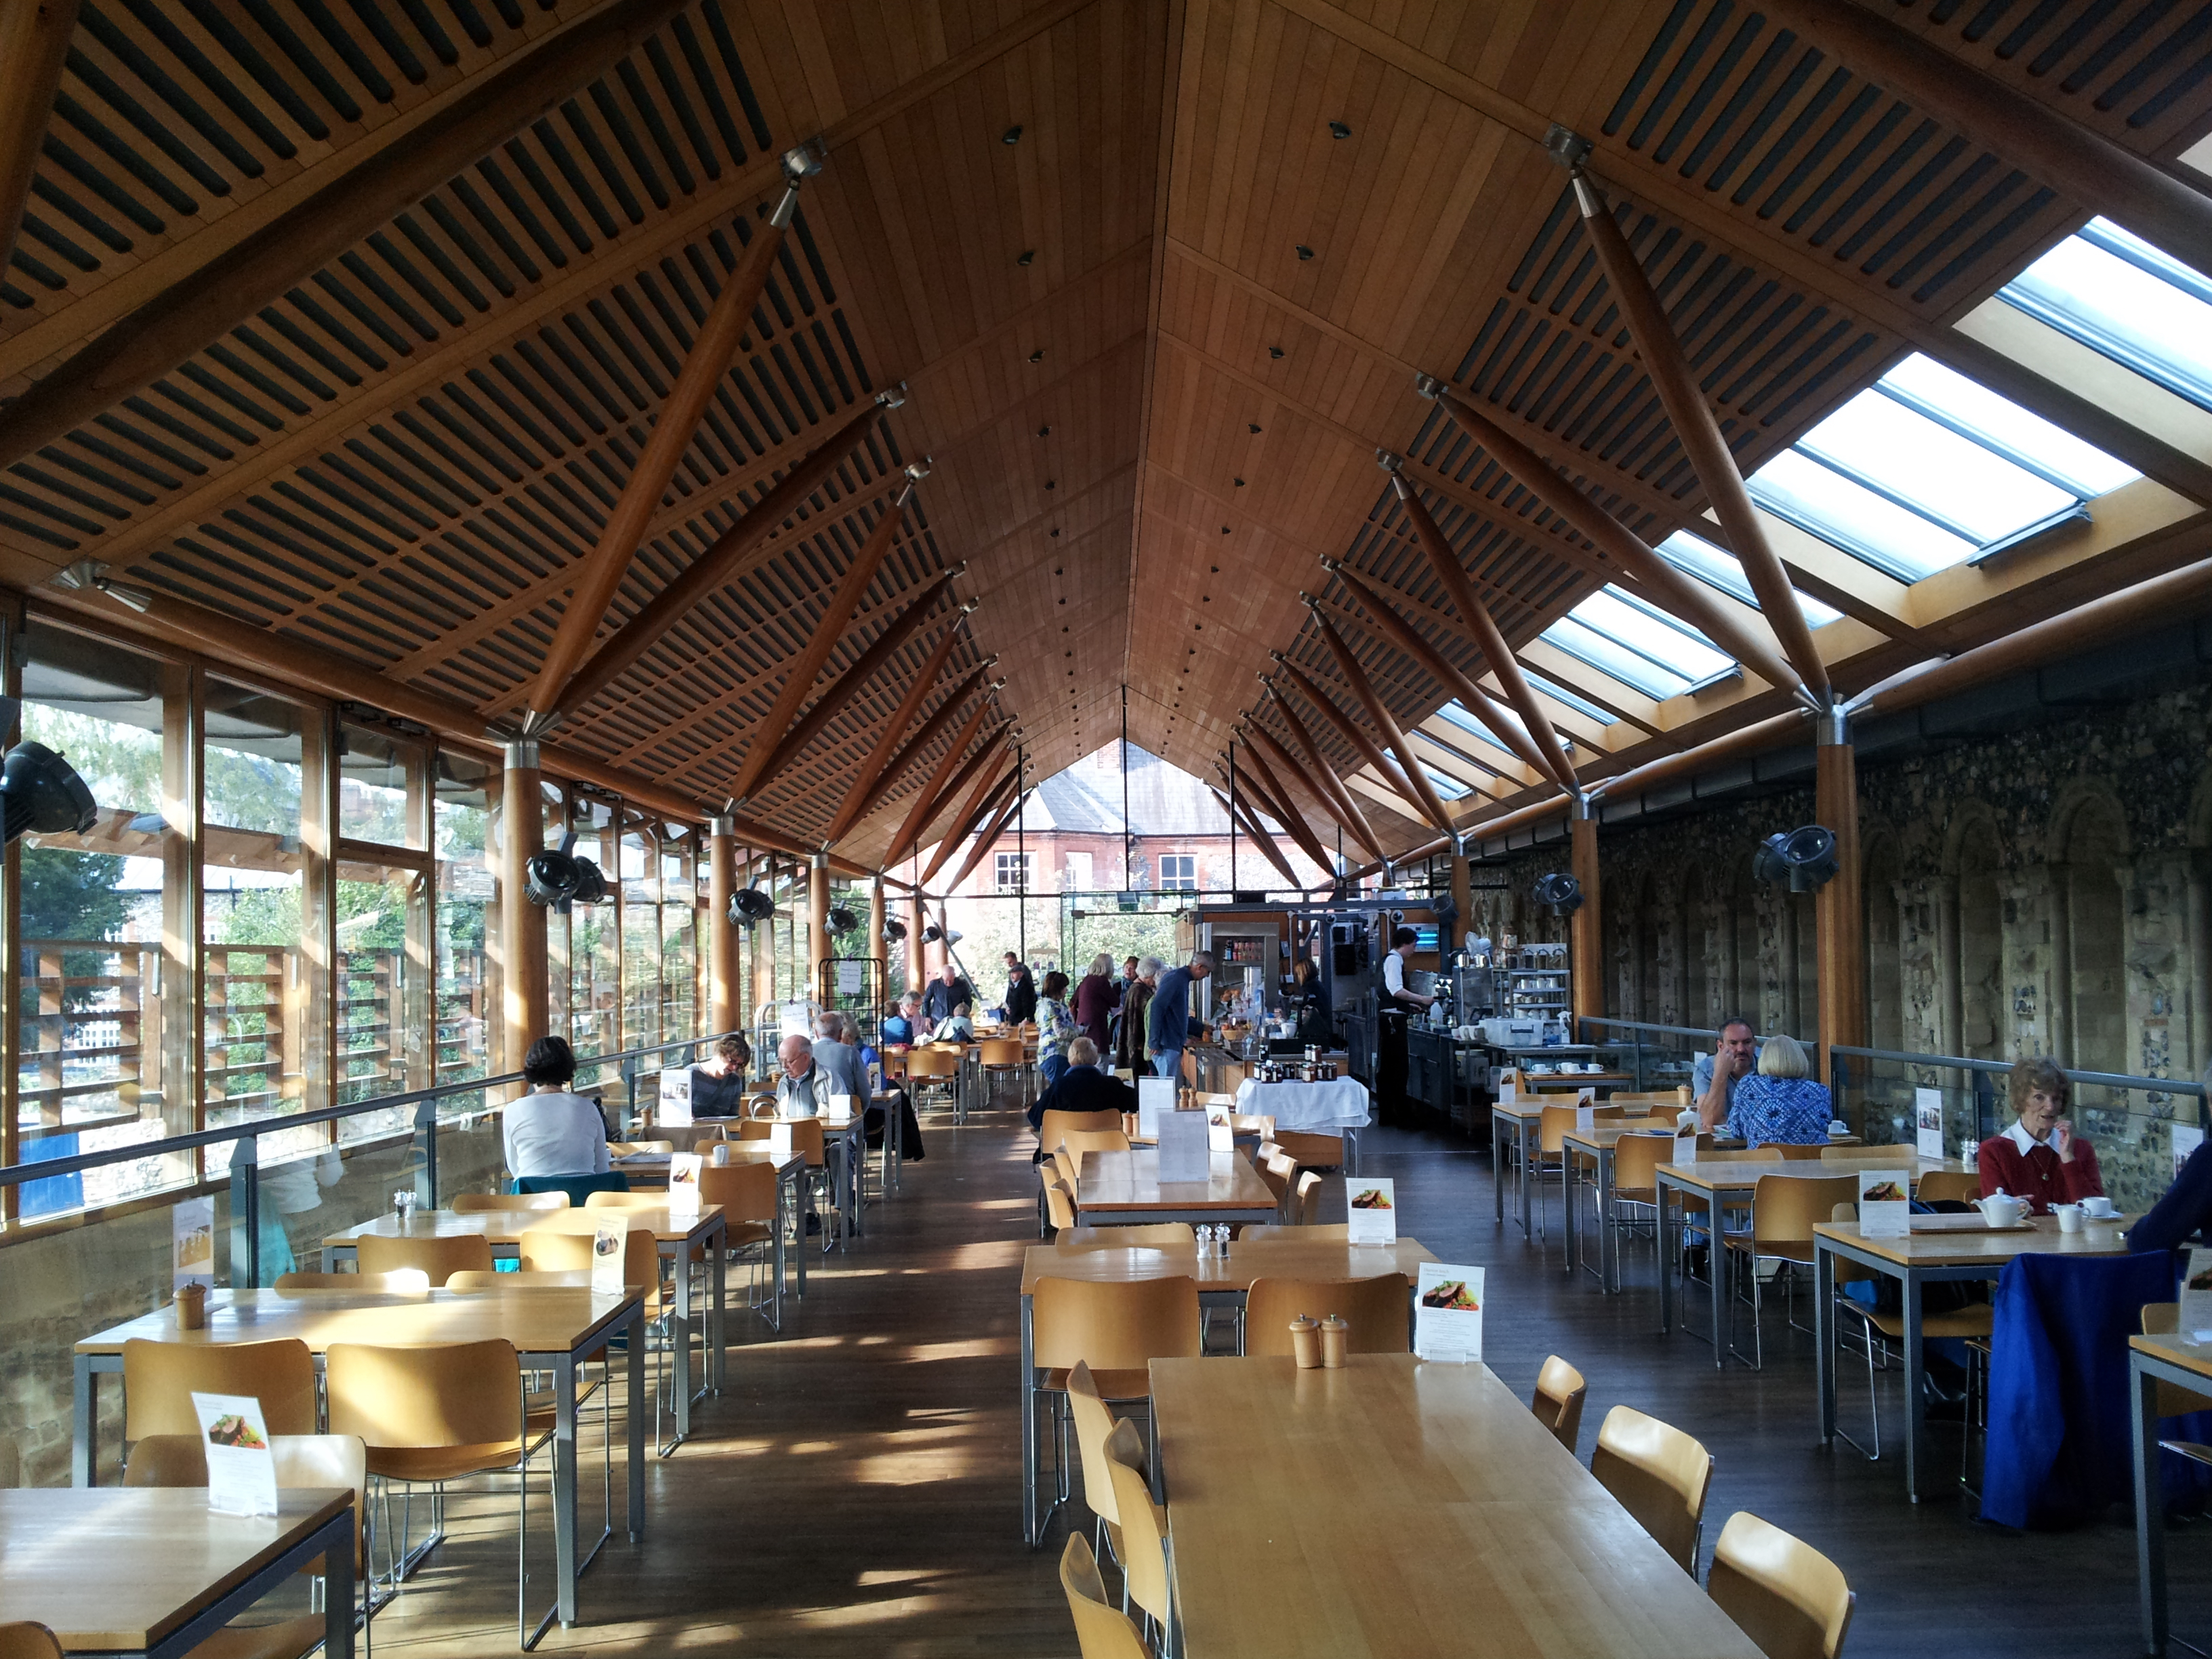 NC Refectory Case Study Image